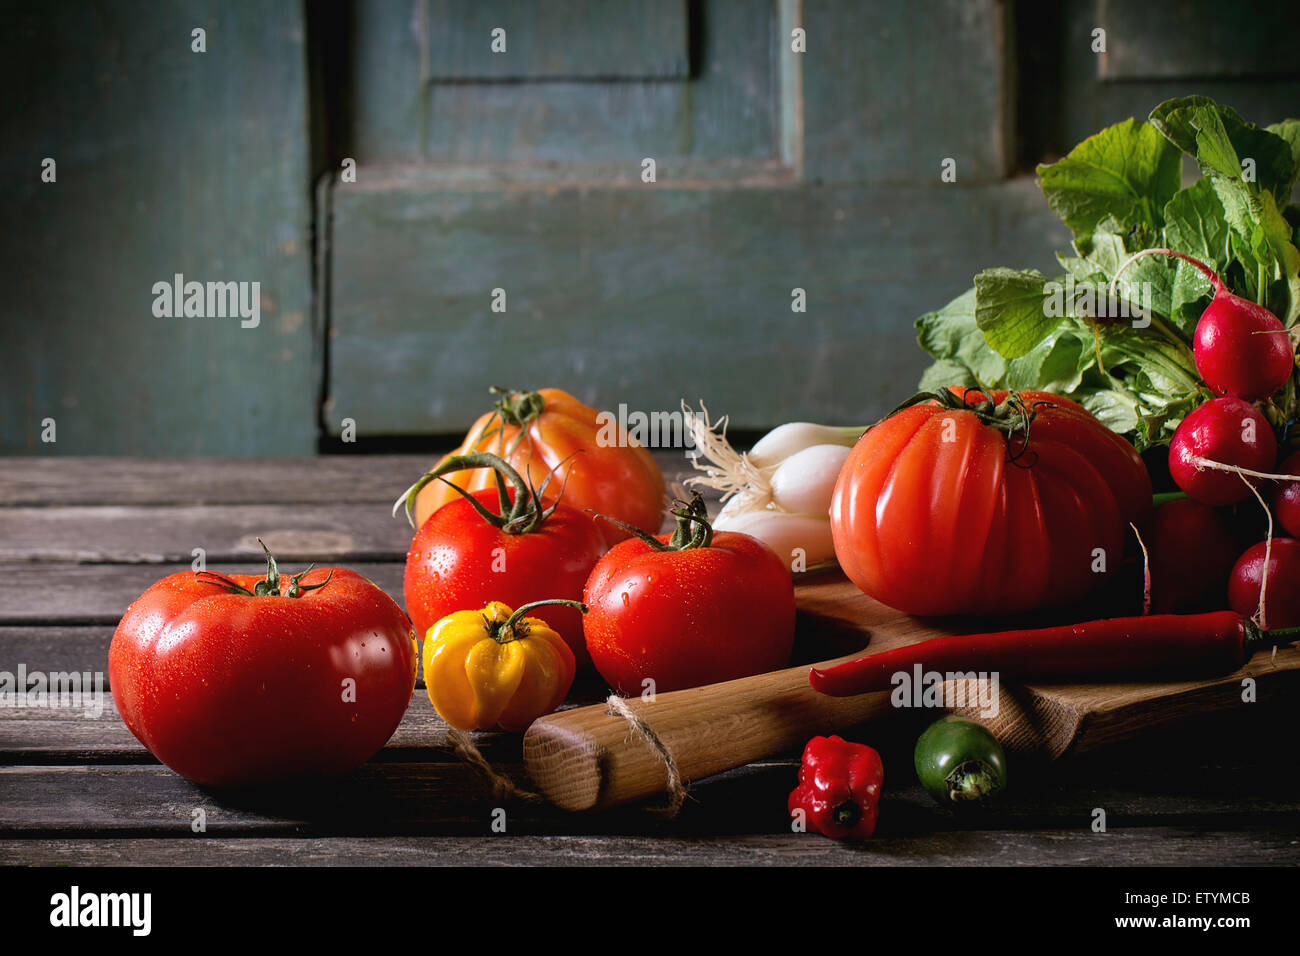 Heap of fresh ripe colorful vegetables tomatoes, chili peppers, green onion and bunch of radish on wooden chopping - Stock Image